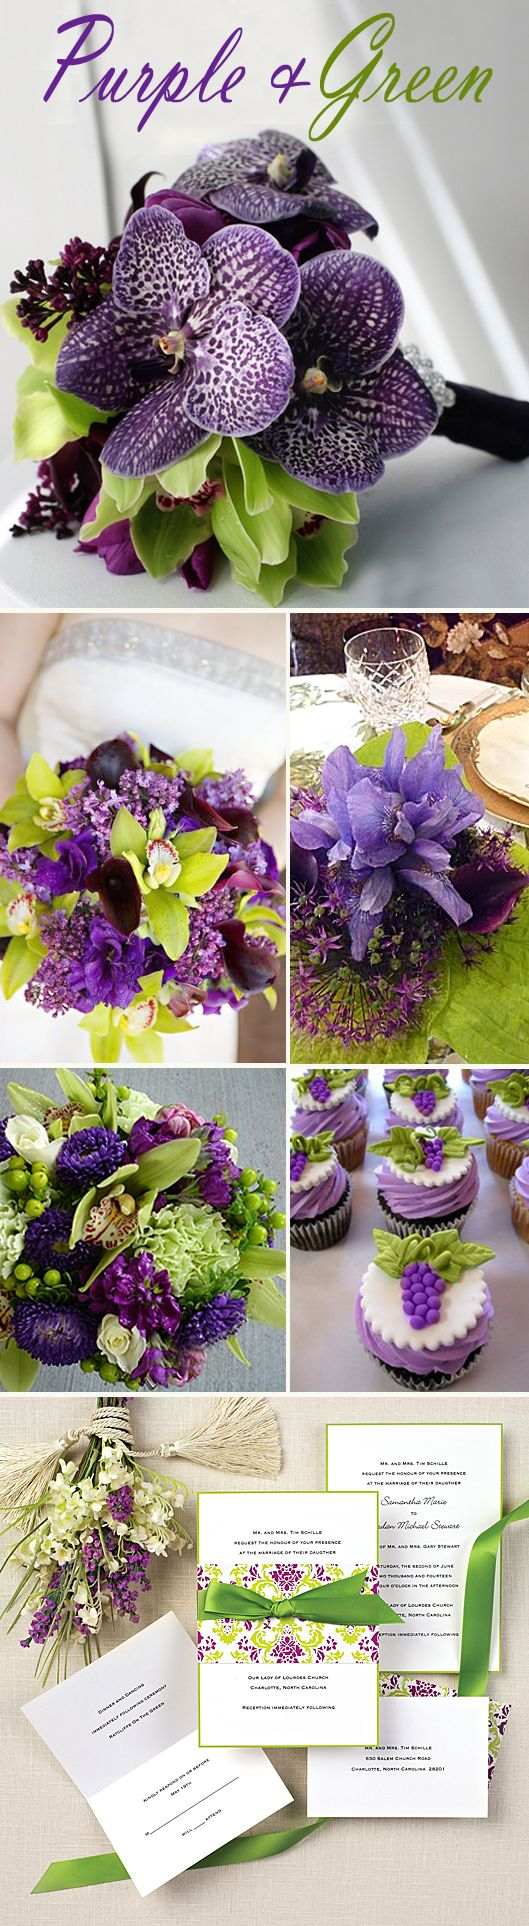 Purple and green are a perfect combination for a spring or summer wedding. The combination works especially well when the two colors are the same intensity